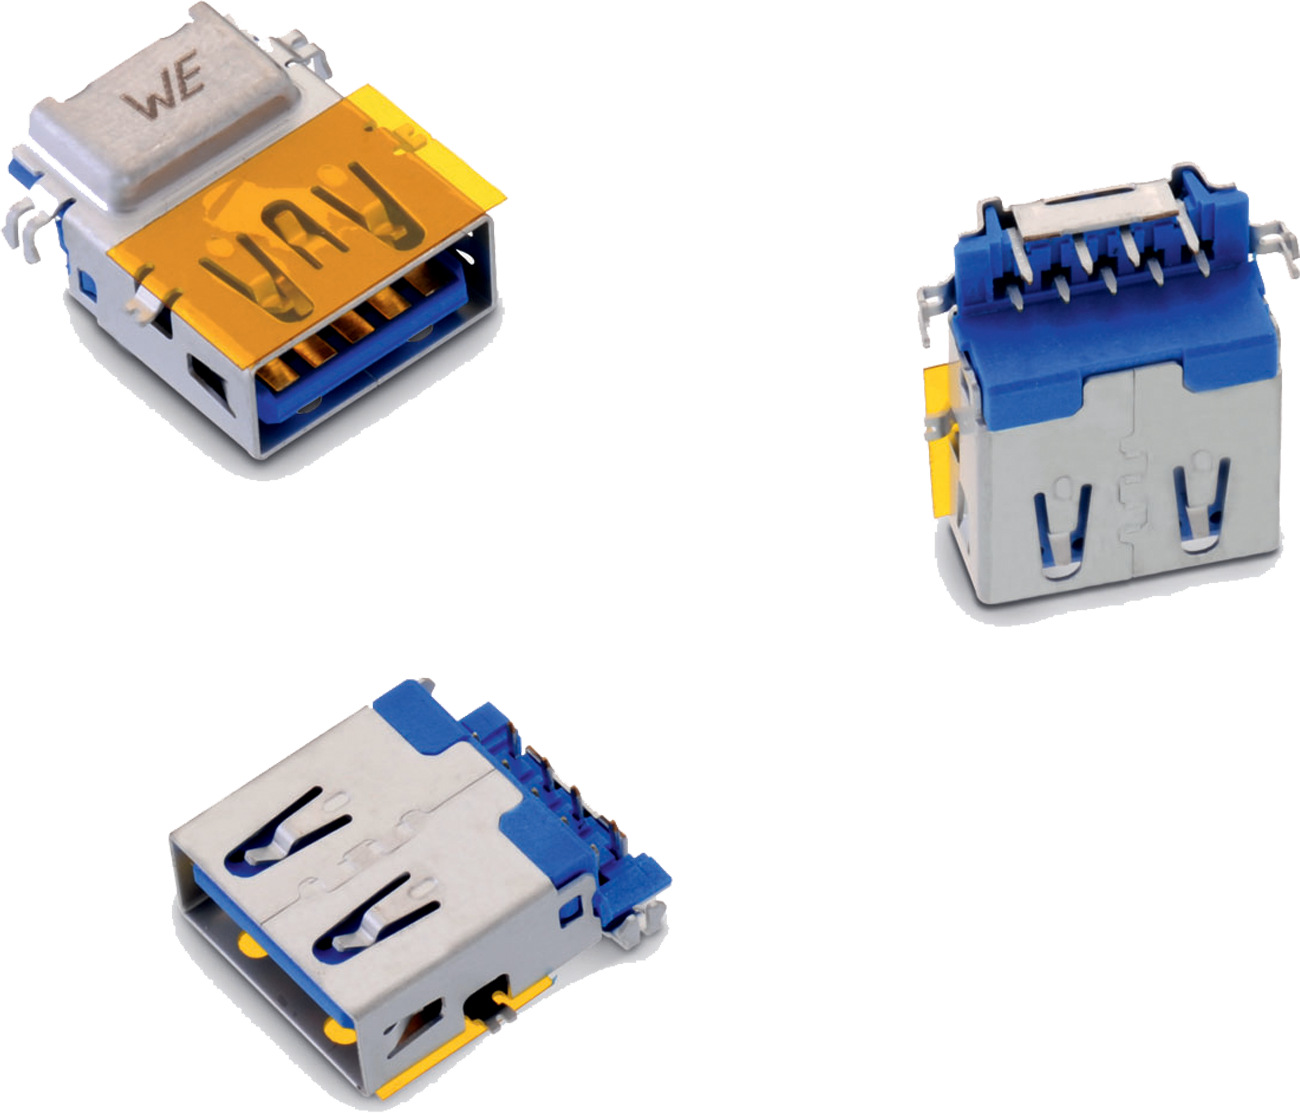 Switch Relay Kit For Linear Actuators Free Download Wiring Diagrams